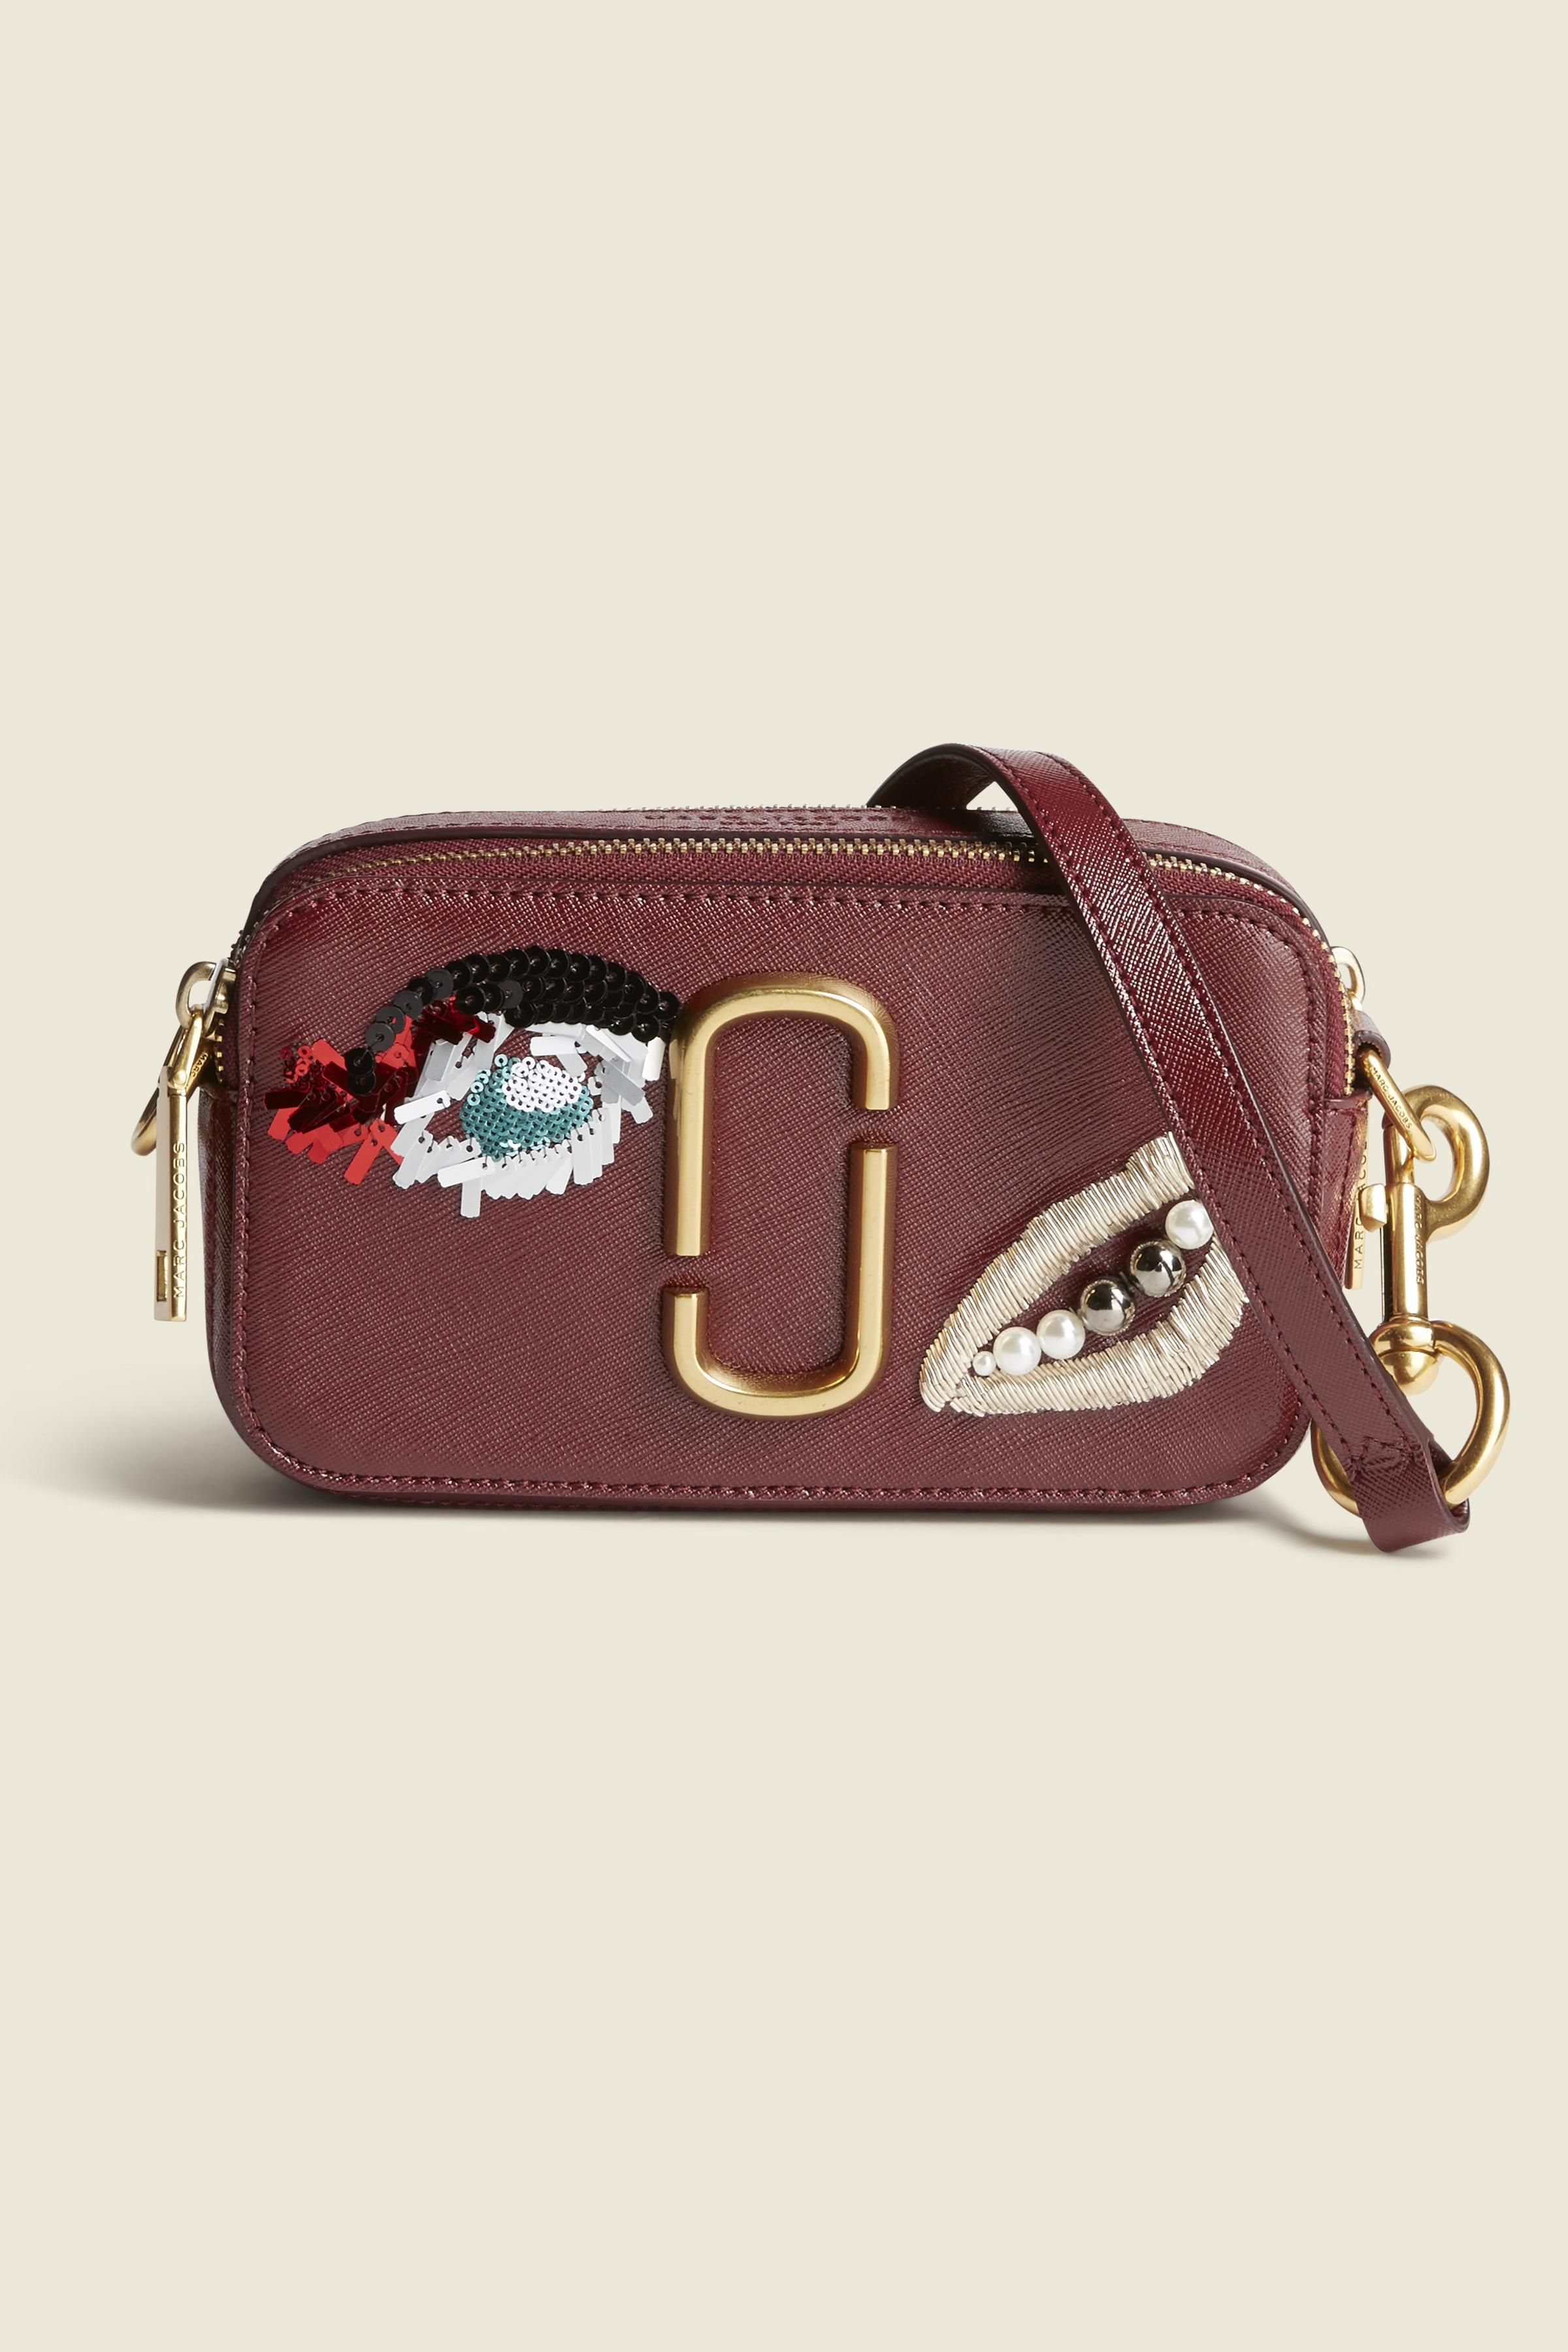 Vintage Collage Snapshot   Marc Jacobs Bags & Wallets   Pinterest